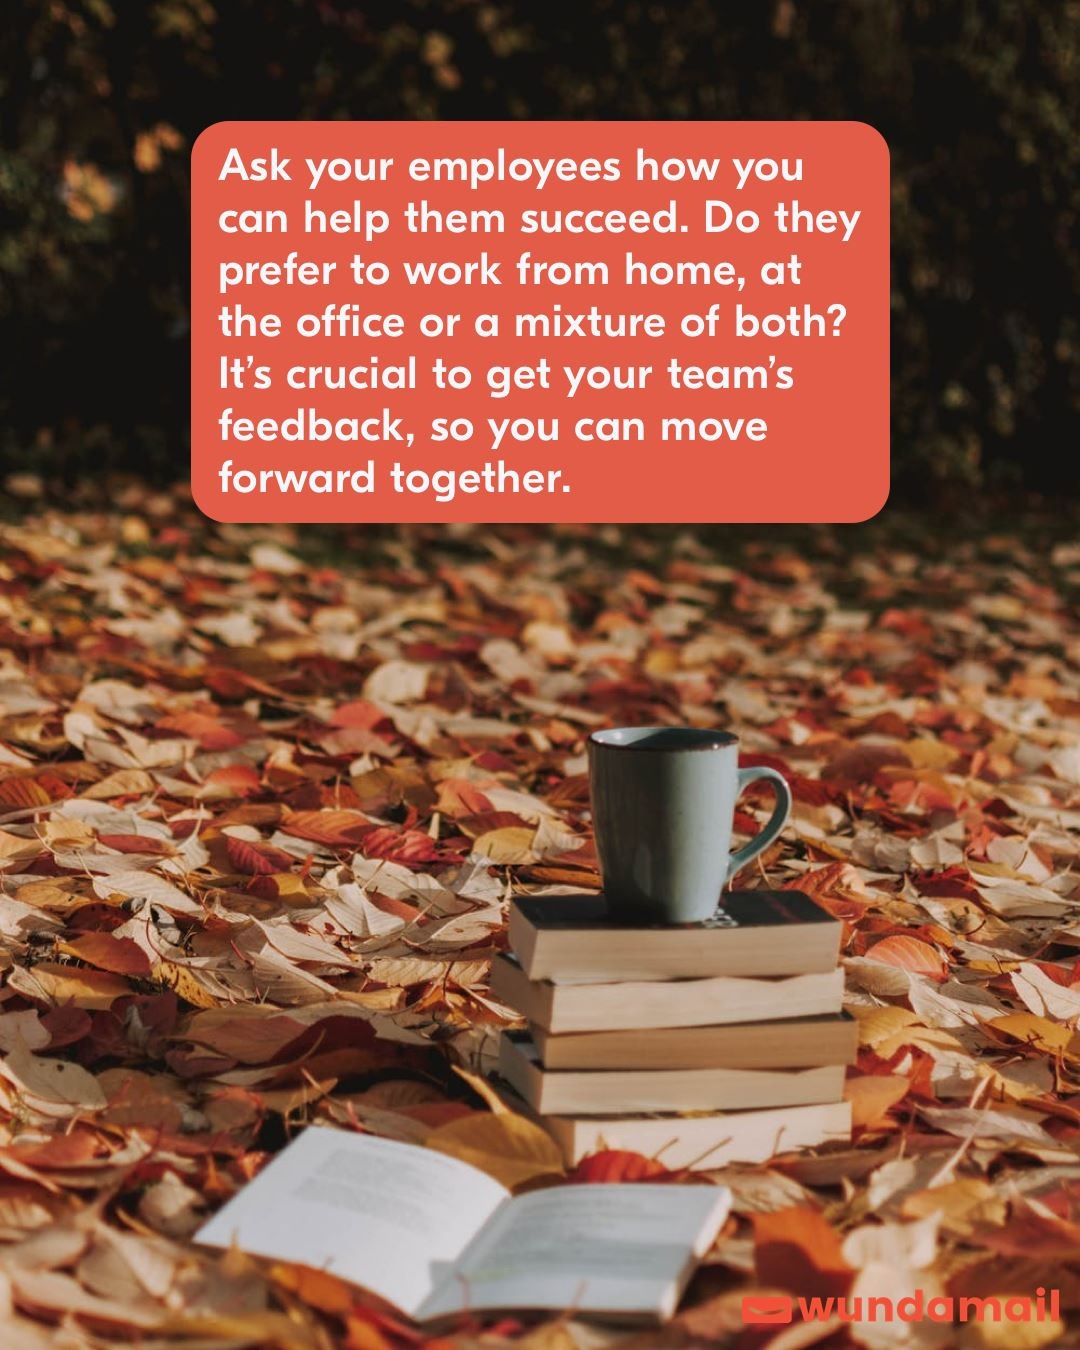 Ask your employees how you can help them succeed.